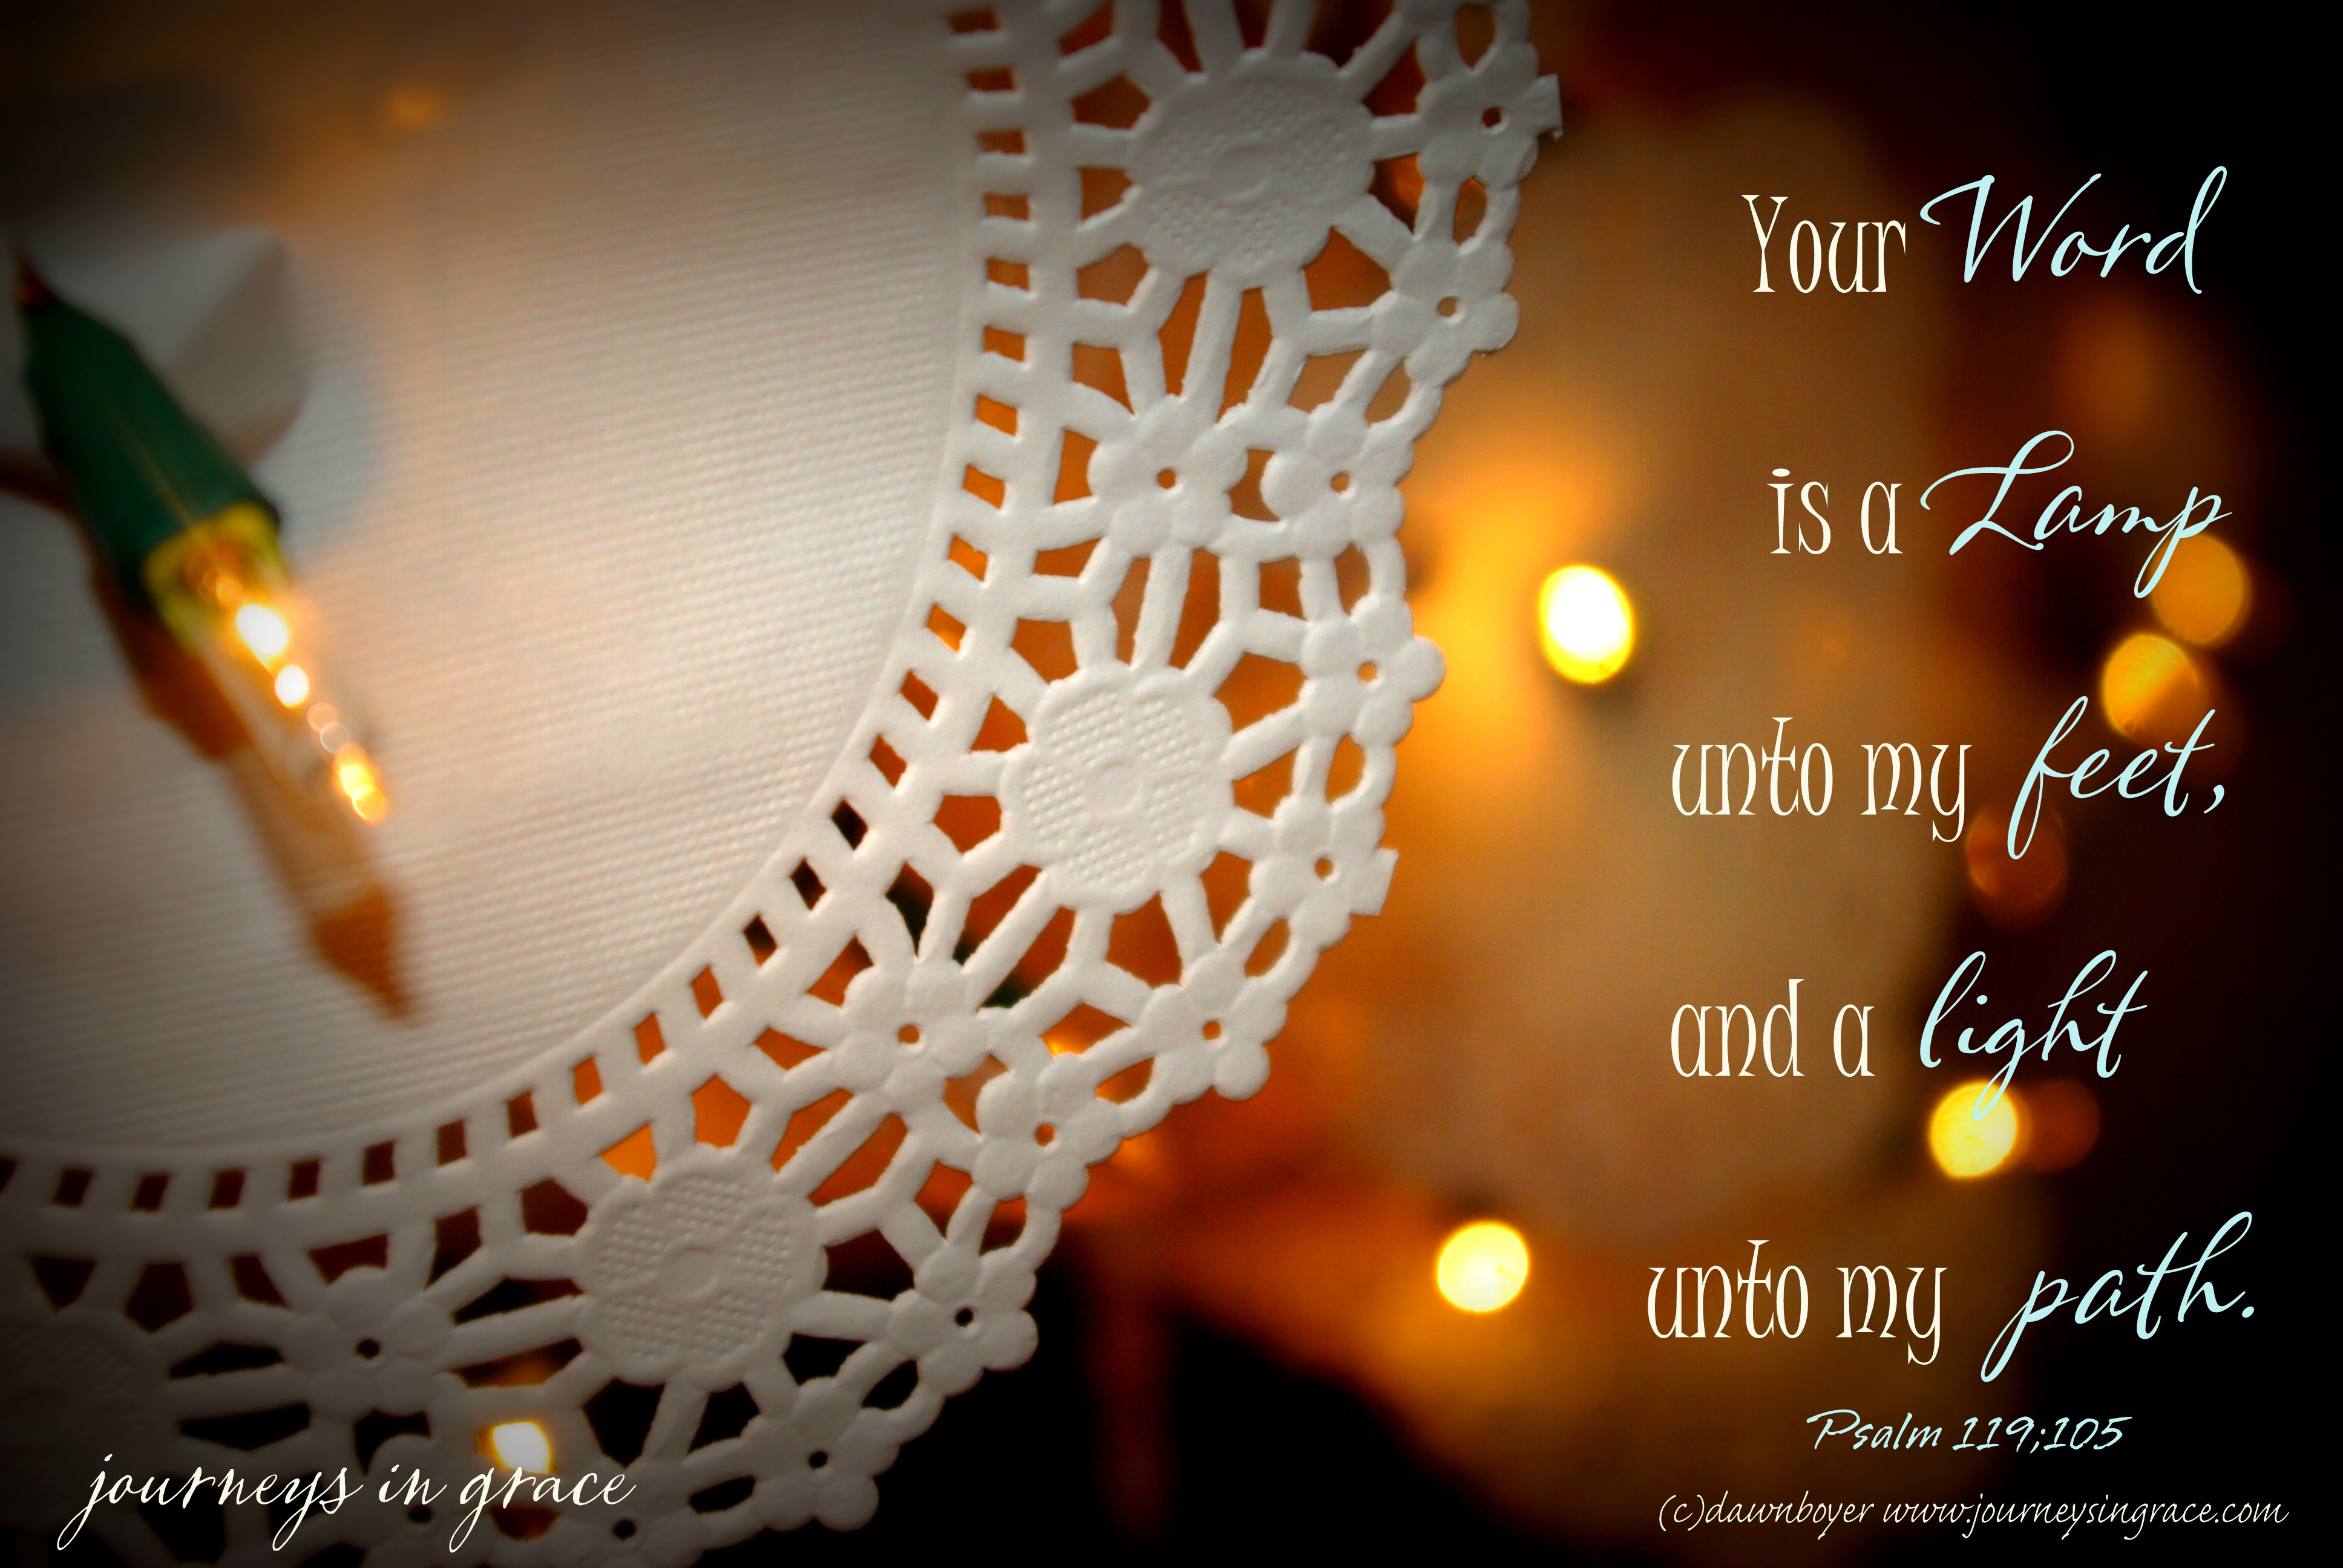 Your word is a lamp to my path ps 119 105